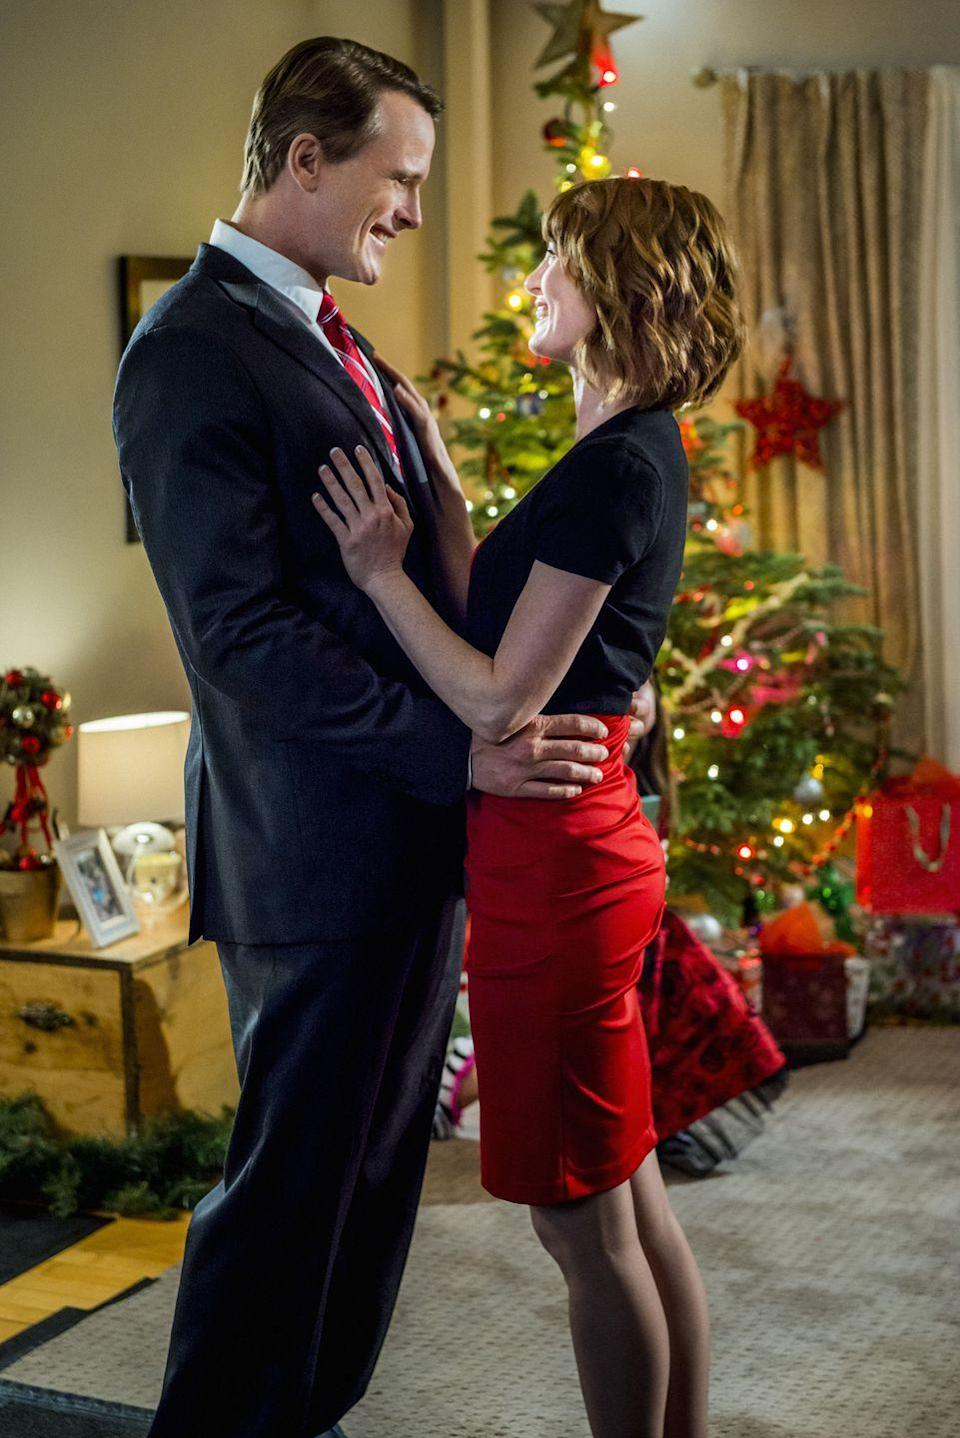 <p>Desperate for work, single mom Nicky (Alicia Witt) finds a job at Cartwright's department store. The only problem is that she'll be playing Santa, and therefore needs to hide the fact that she's a woman. Fortunately, she has the help of an angel, and ends up meeting the love of her life in the process.</p>